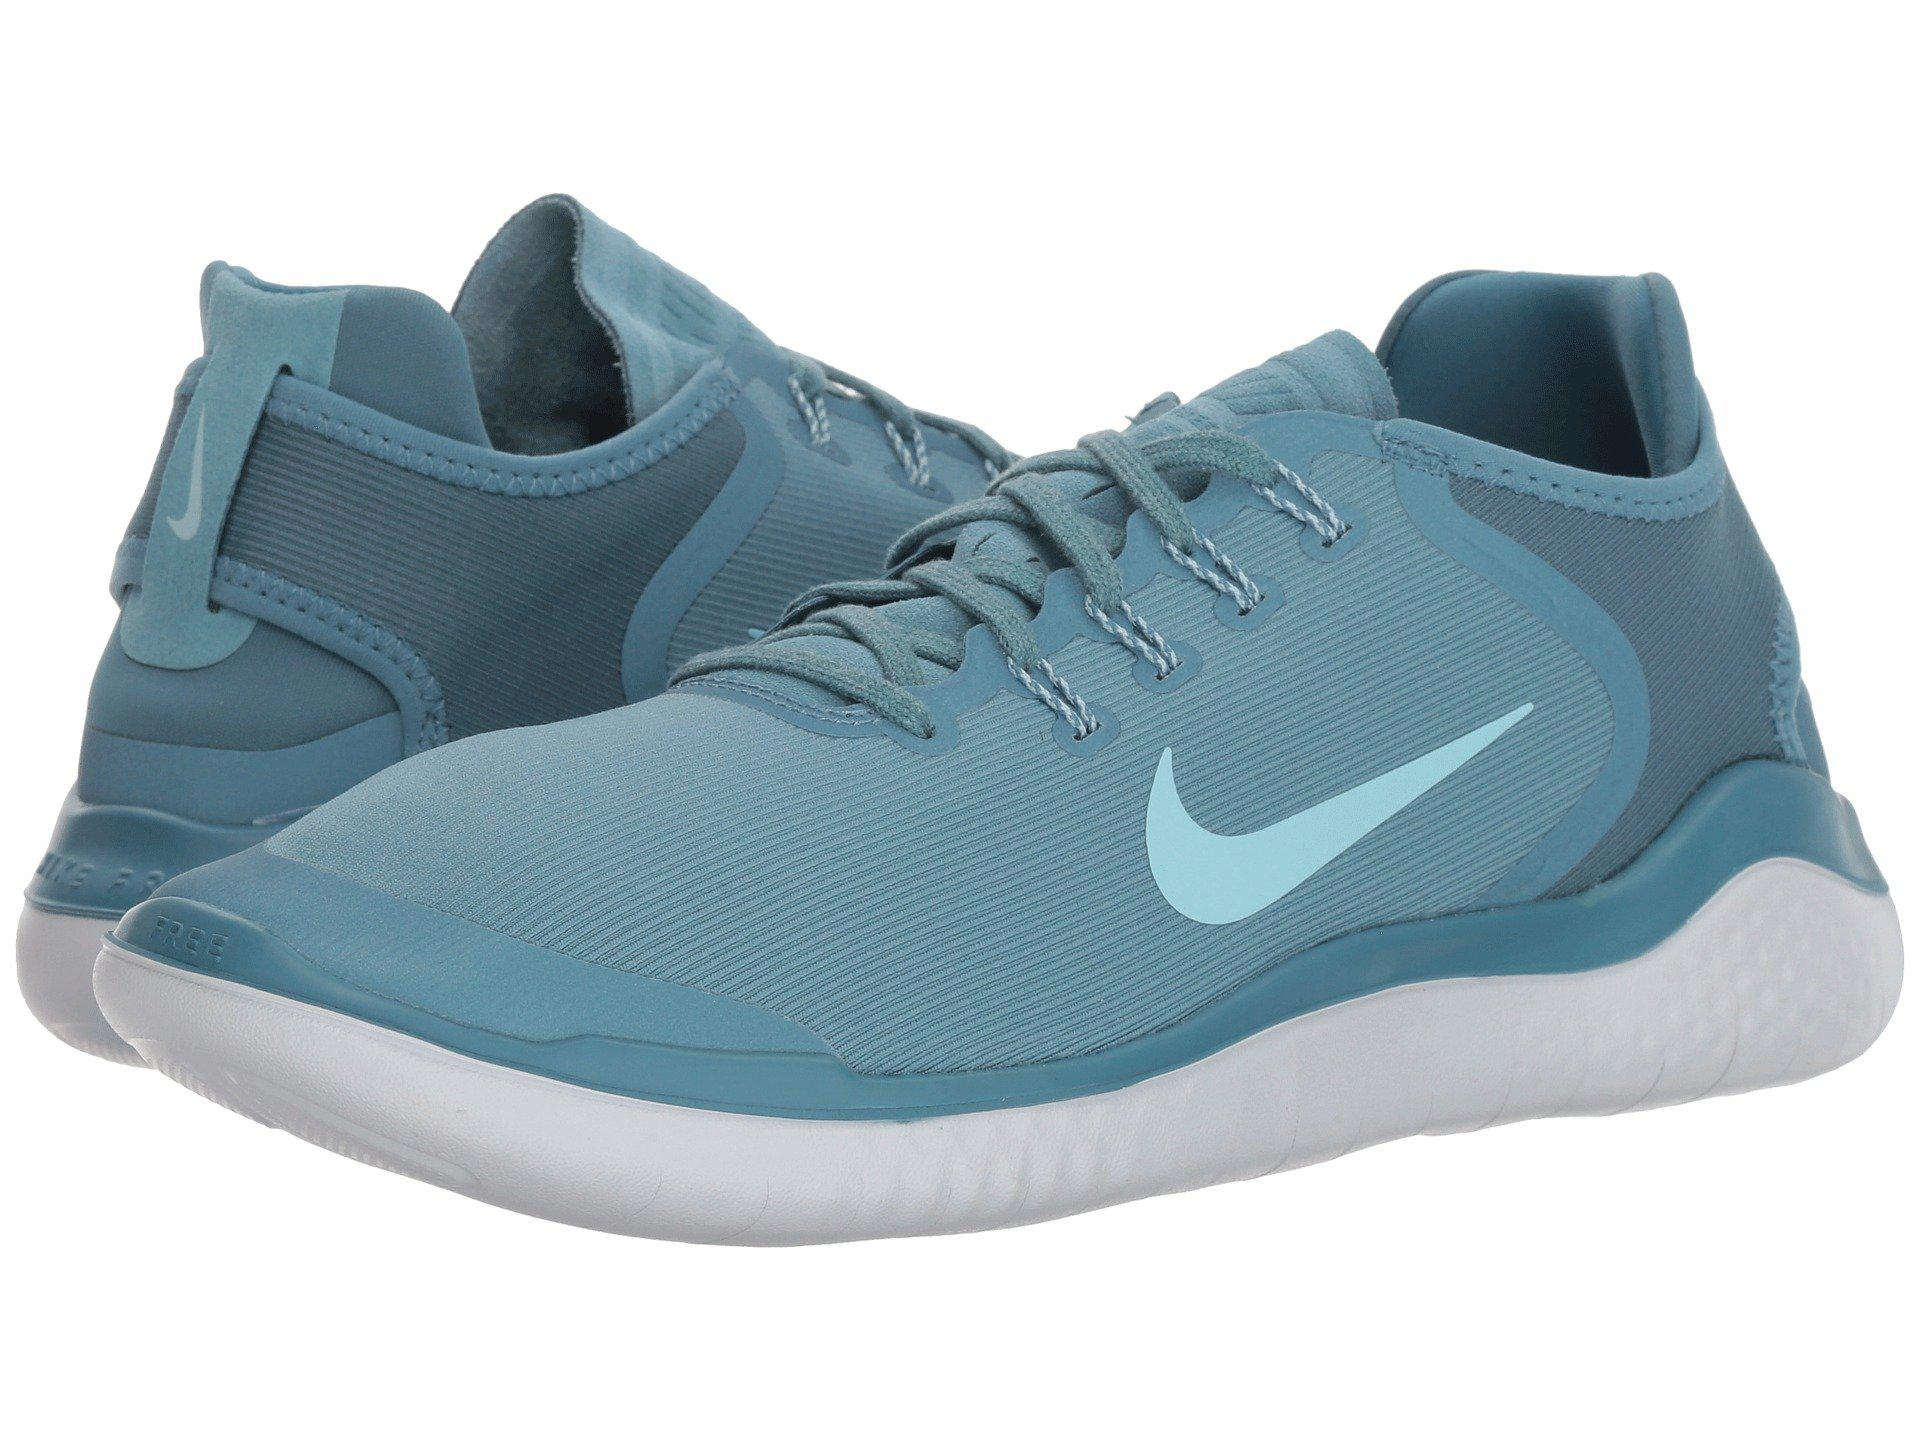 9e7f003f0322 Lyst - Nike Free Rn 2018 Sun Bleached in Blue for Men - Save 17%